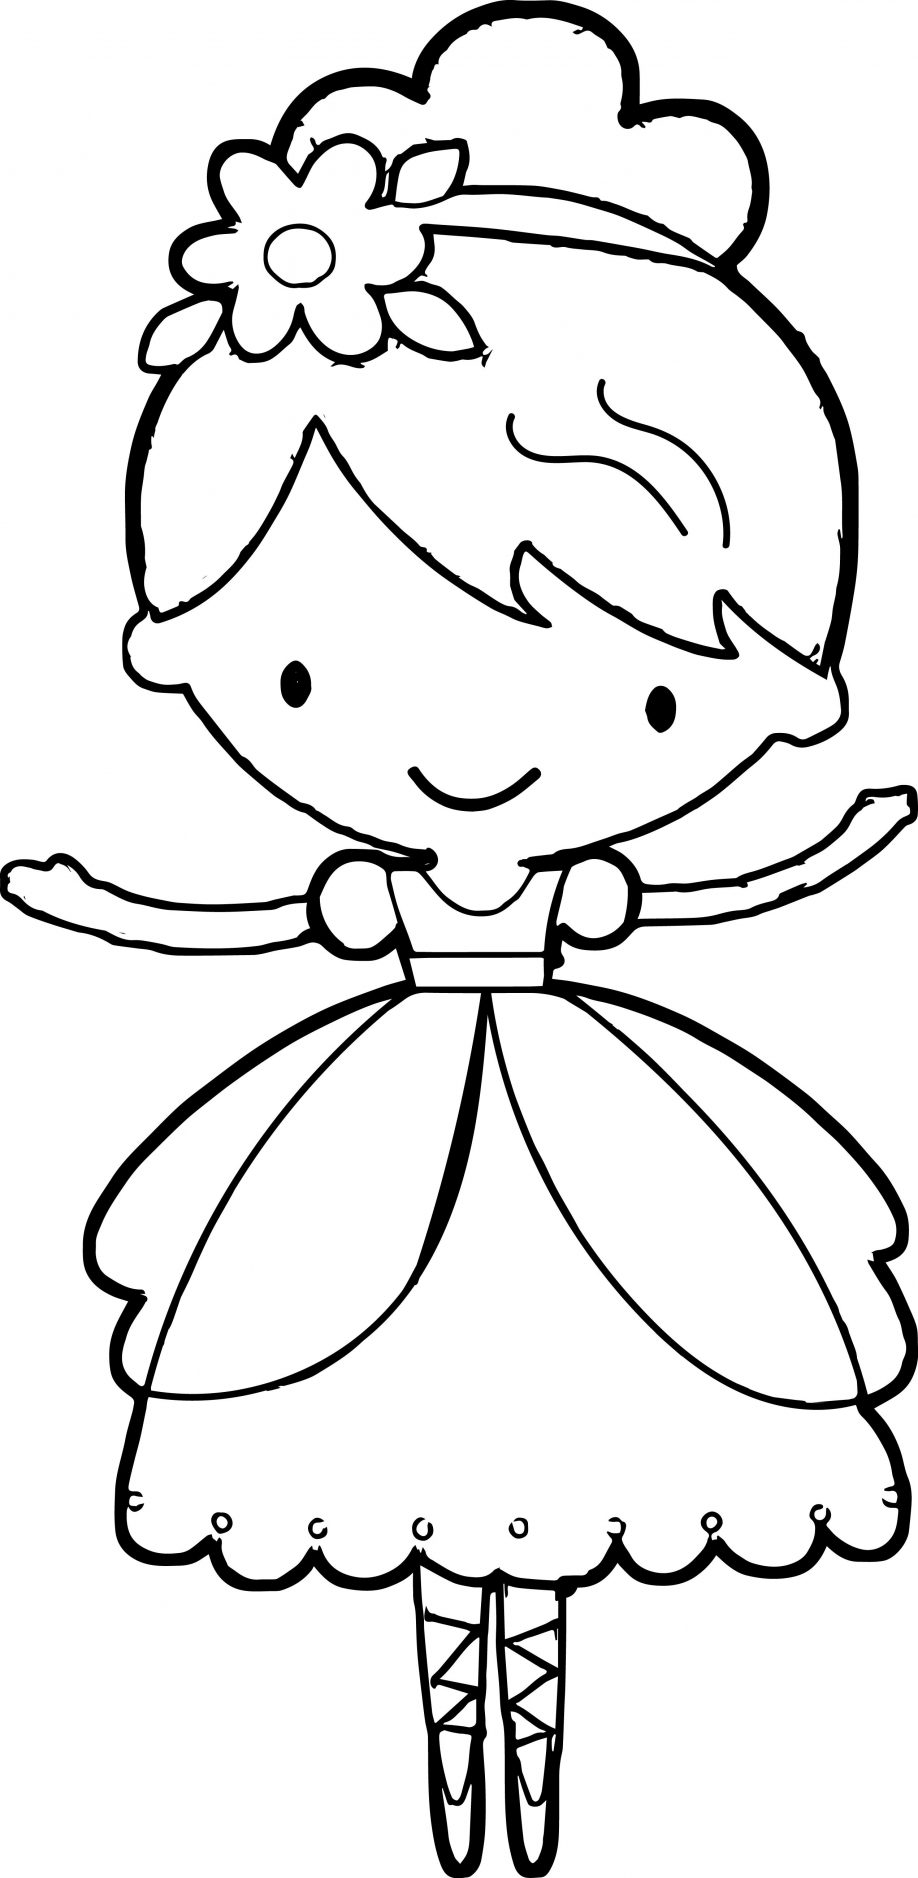 ballet colouring pictures ballet coloring pages coloringpages1001com colouring ballet pictures